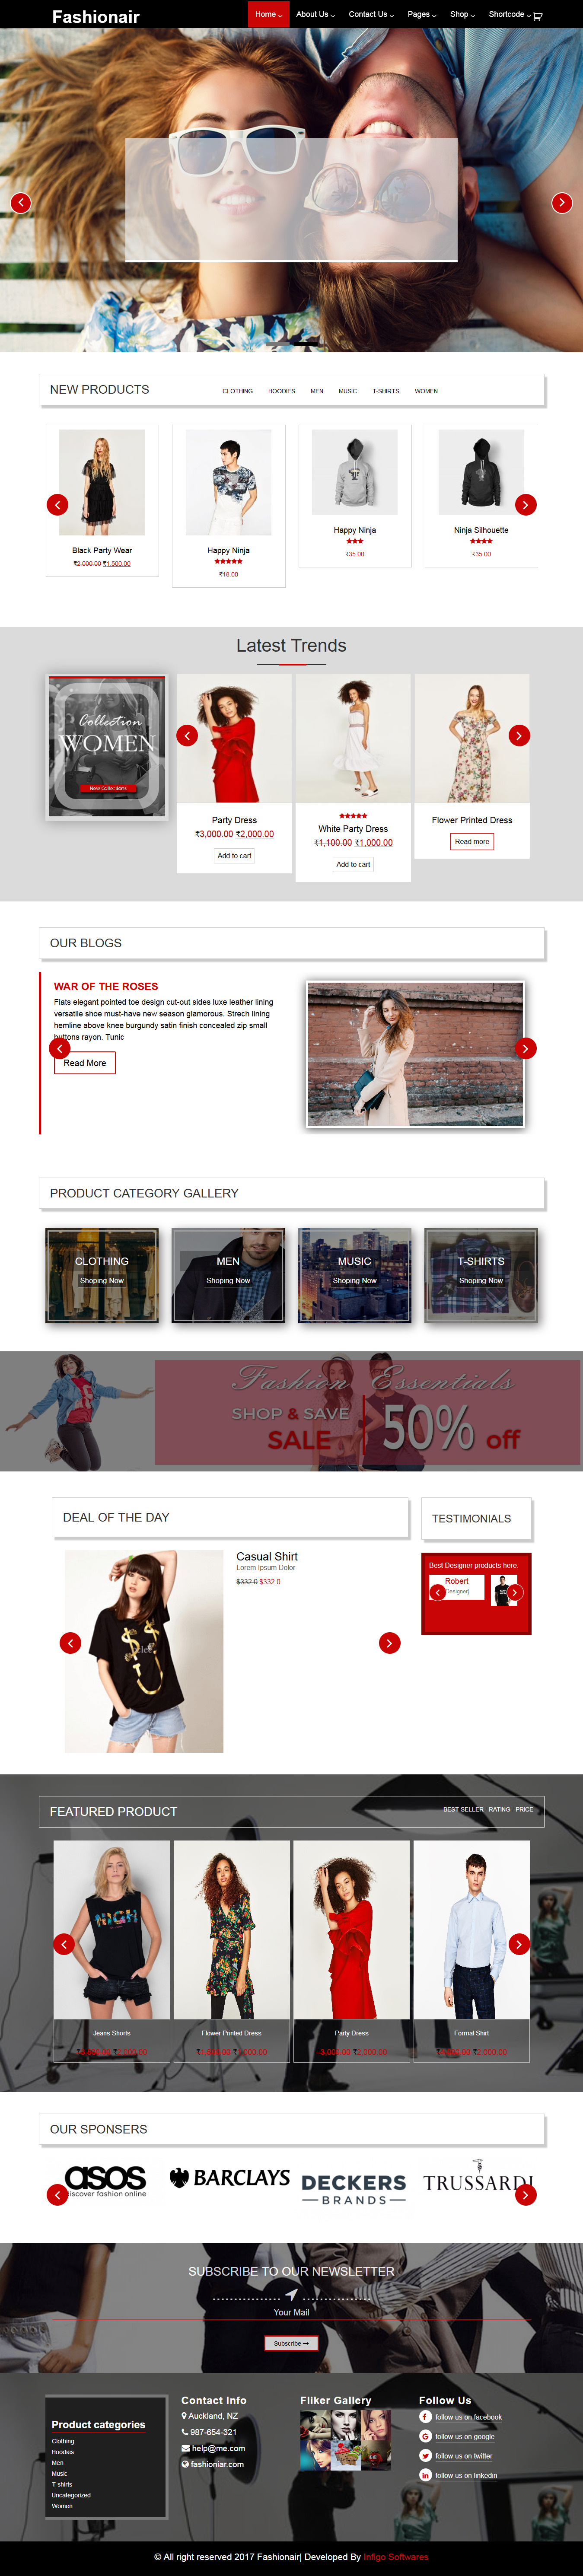 fashionair - Best Free Fashion WordPress Theme